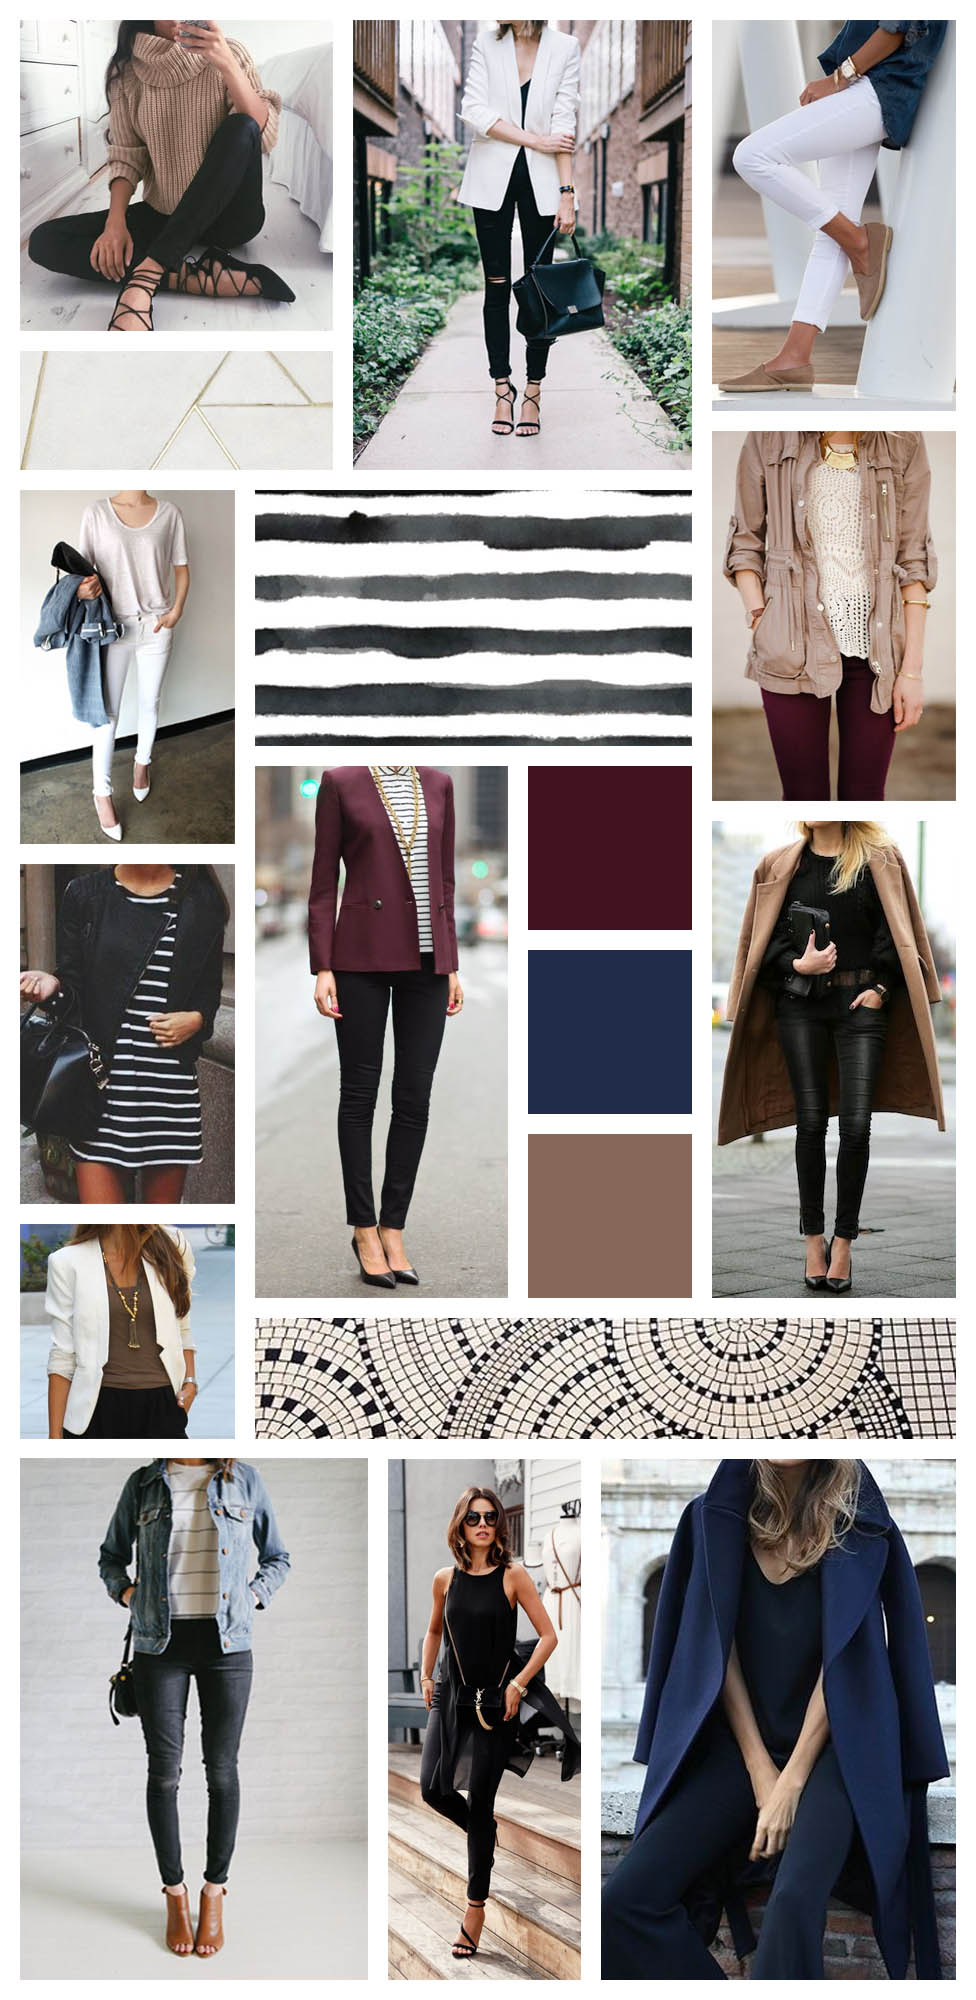 """My mini-Pinterest board to inspire my wardrobe purchases this season. - Cat On The Moon - """"A thoughtful lifestyle blog for a simplified life."""""""